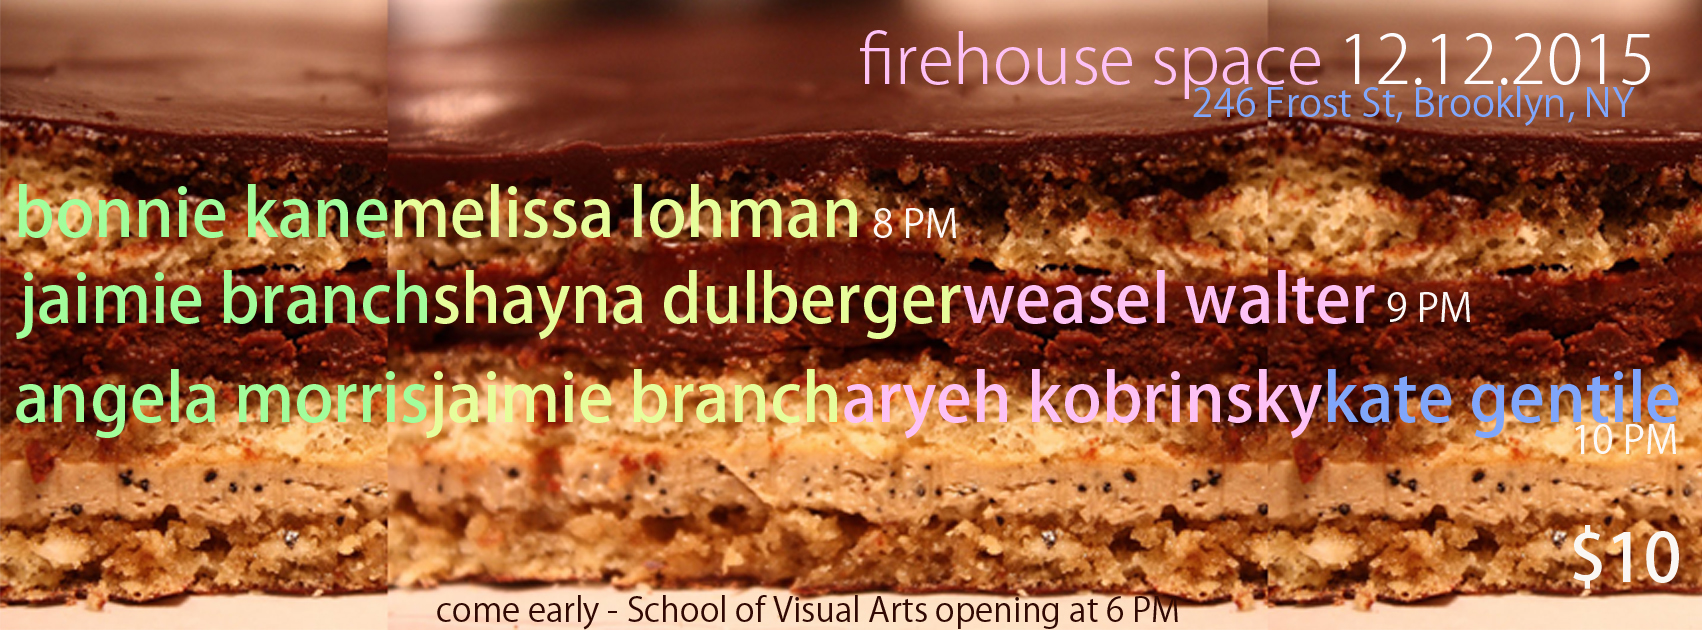 dec 12 firehouse banner2